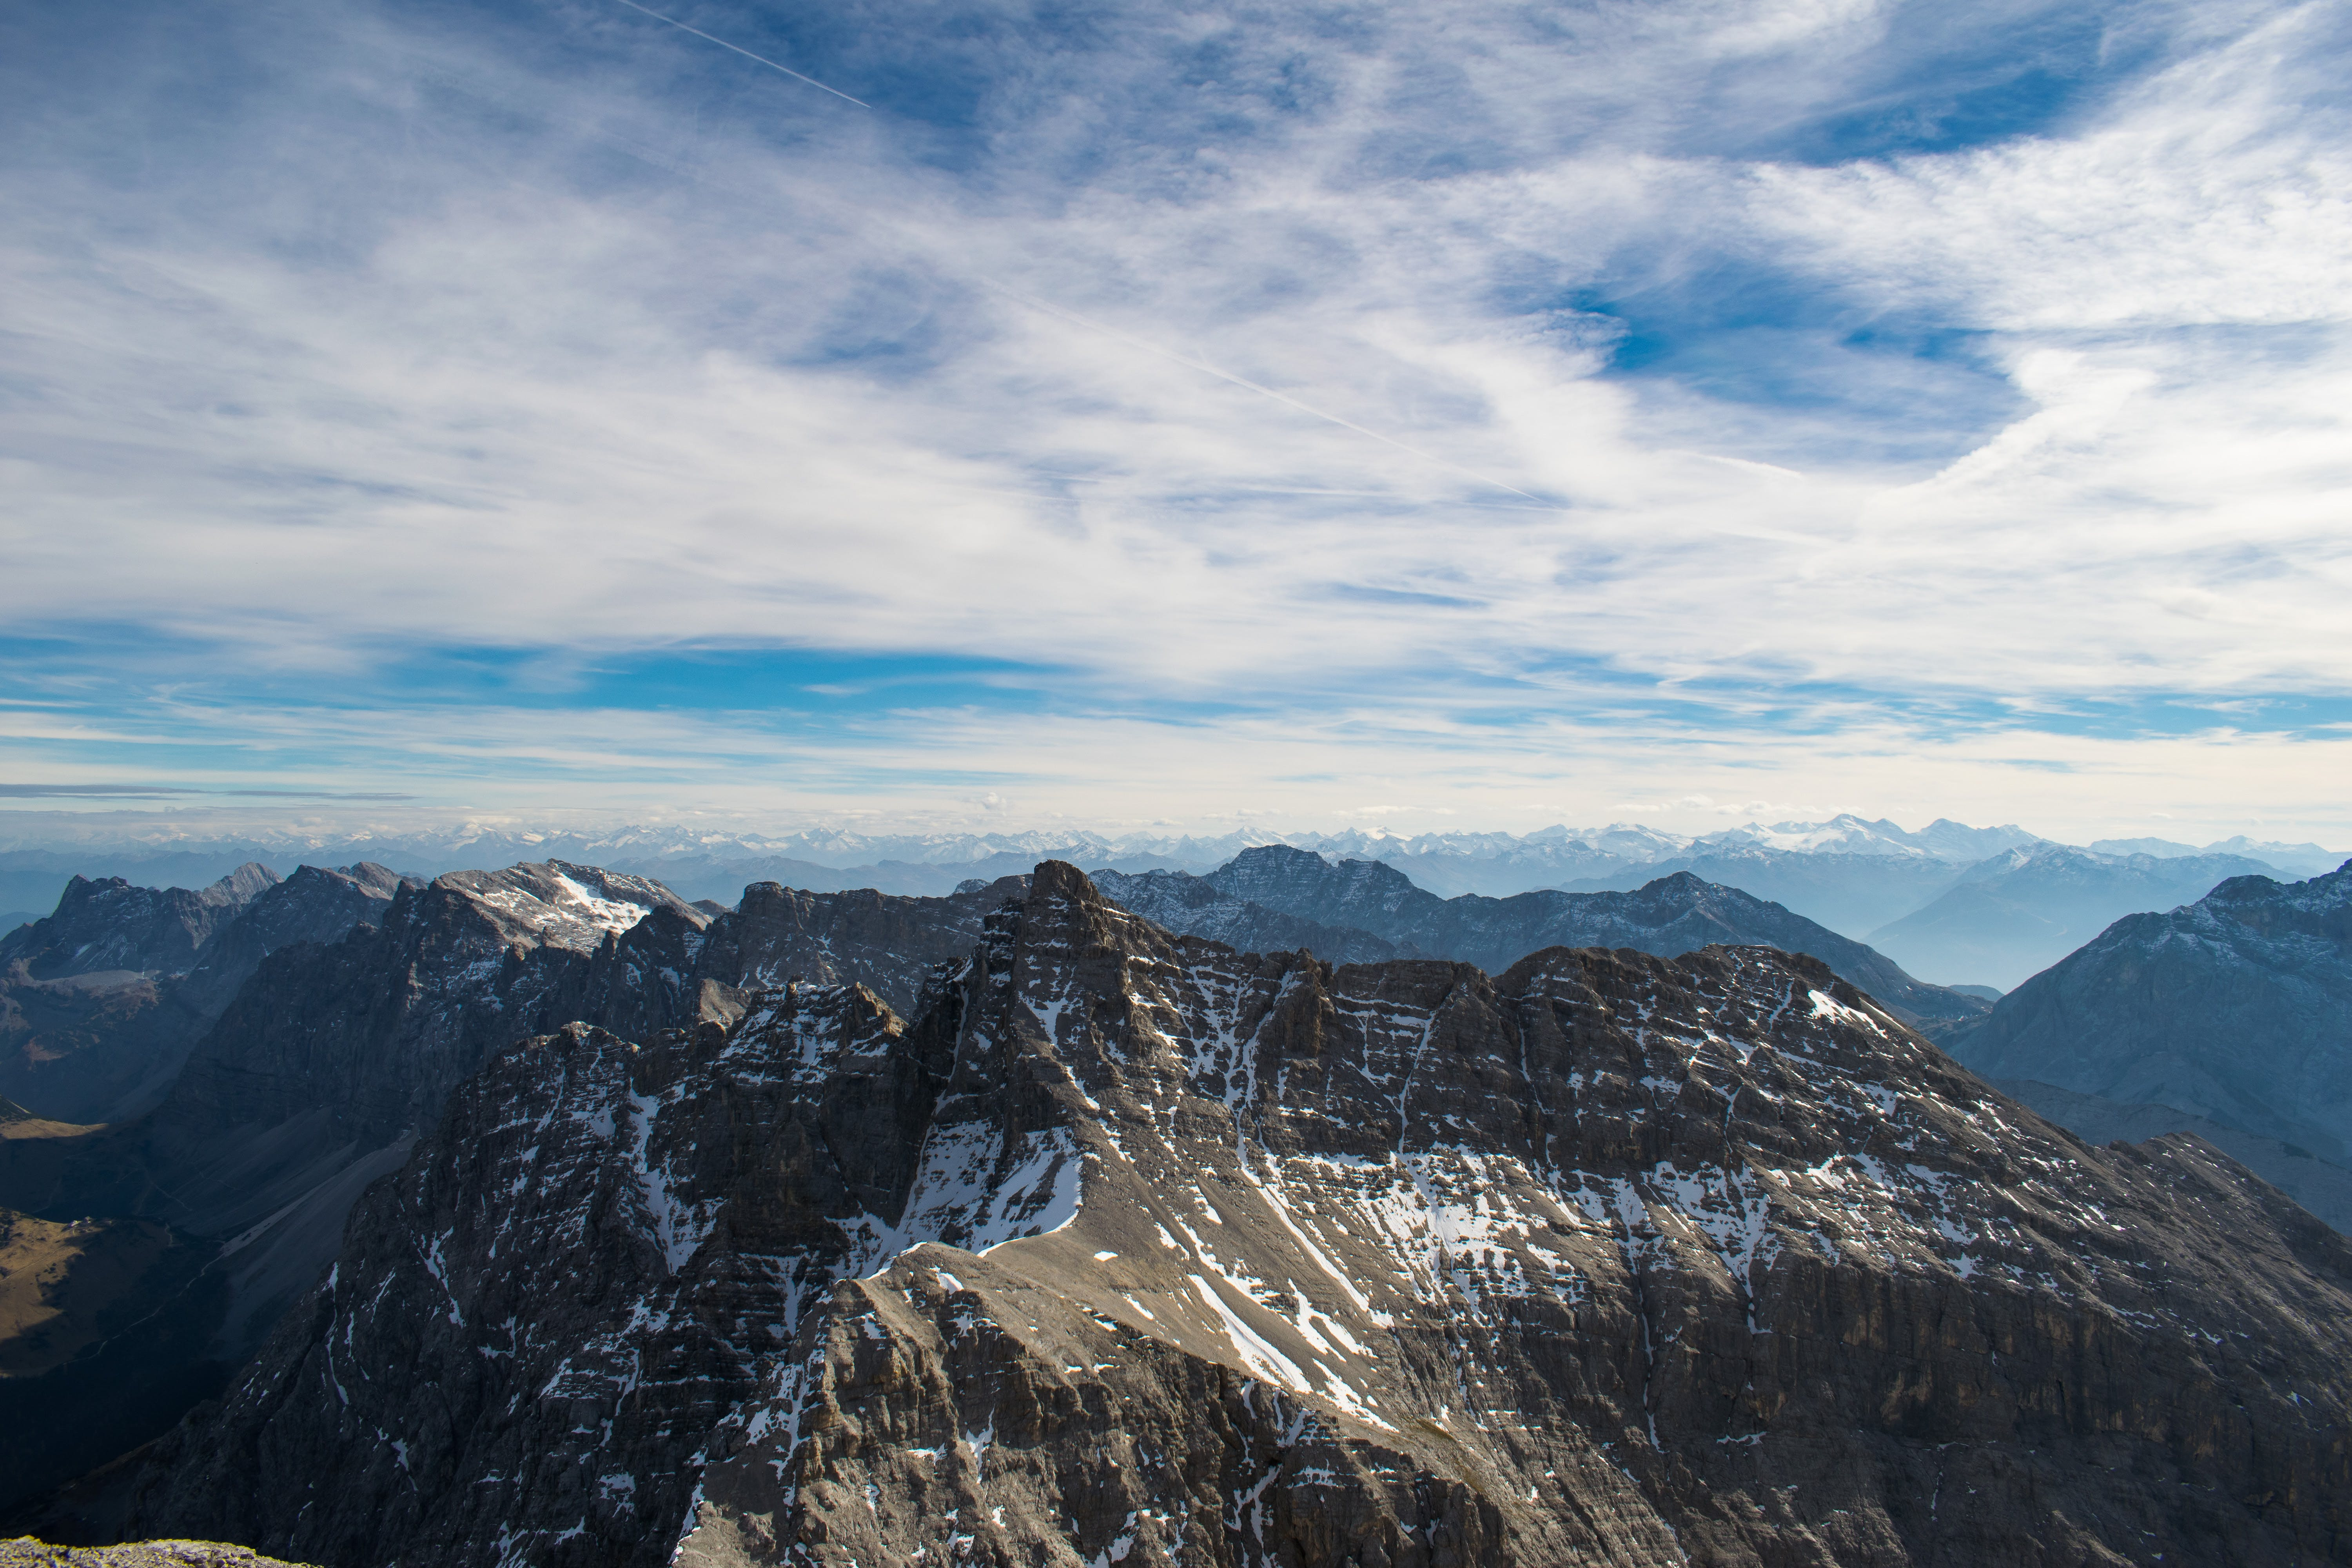 Aerial Photography of Mountains